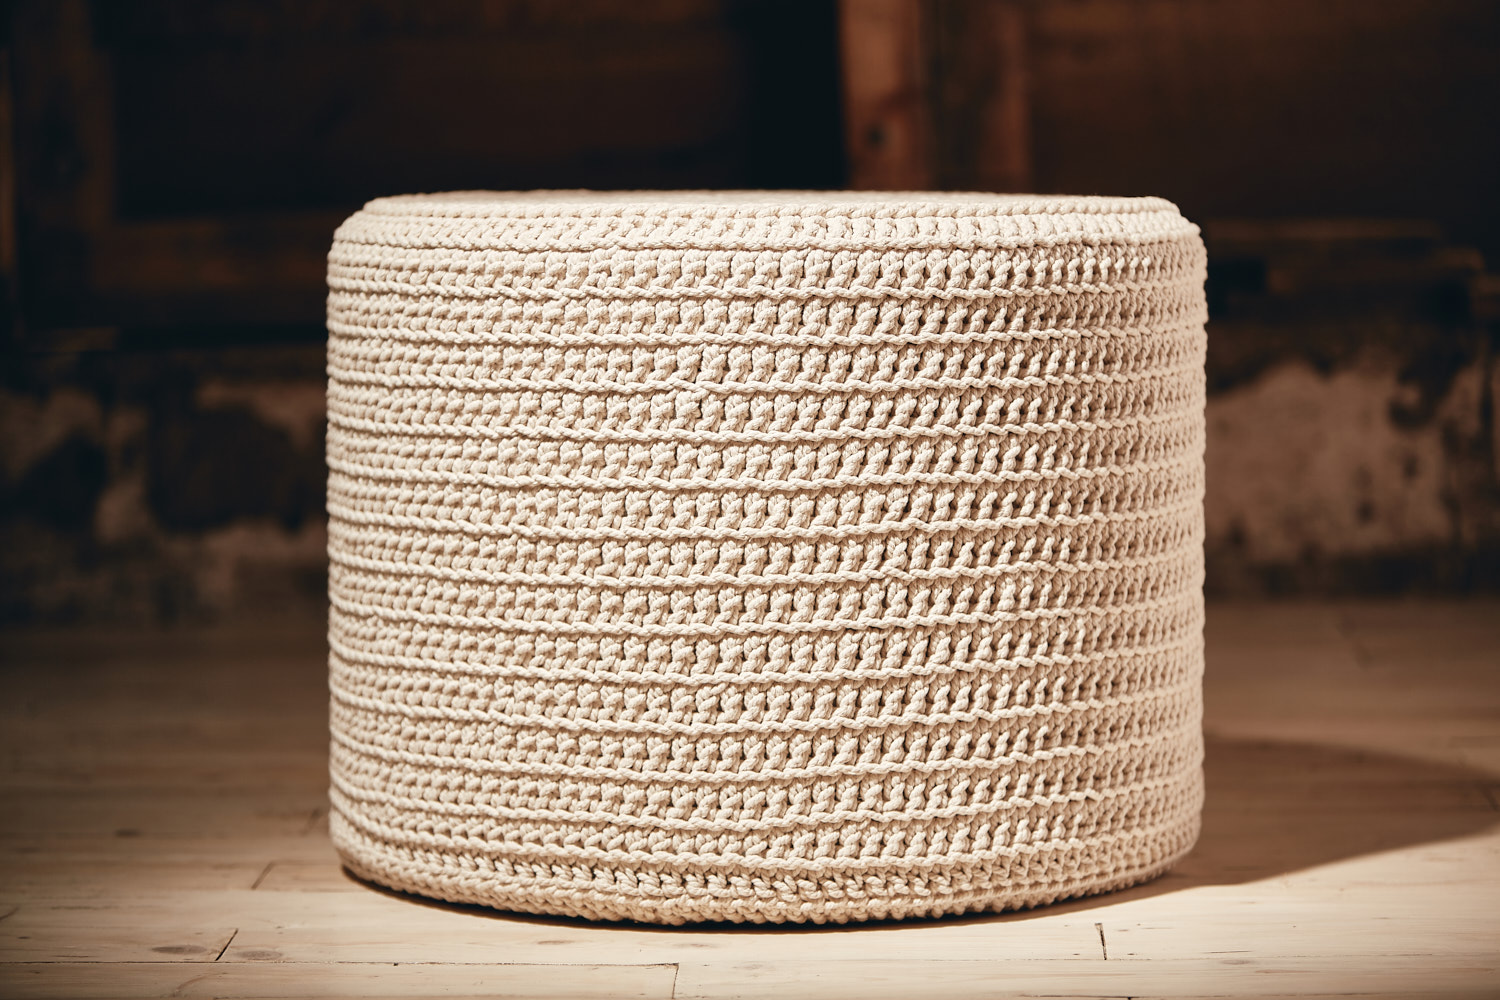 ROUND OTTOMAN   Recycled Cotton (chunky) D600mm x H450mm  High density foam inner cushion, base board, removable fabric lining, hand-crocheted cover